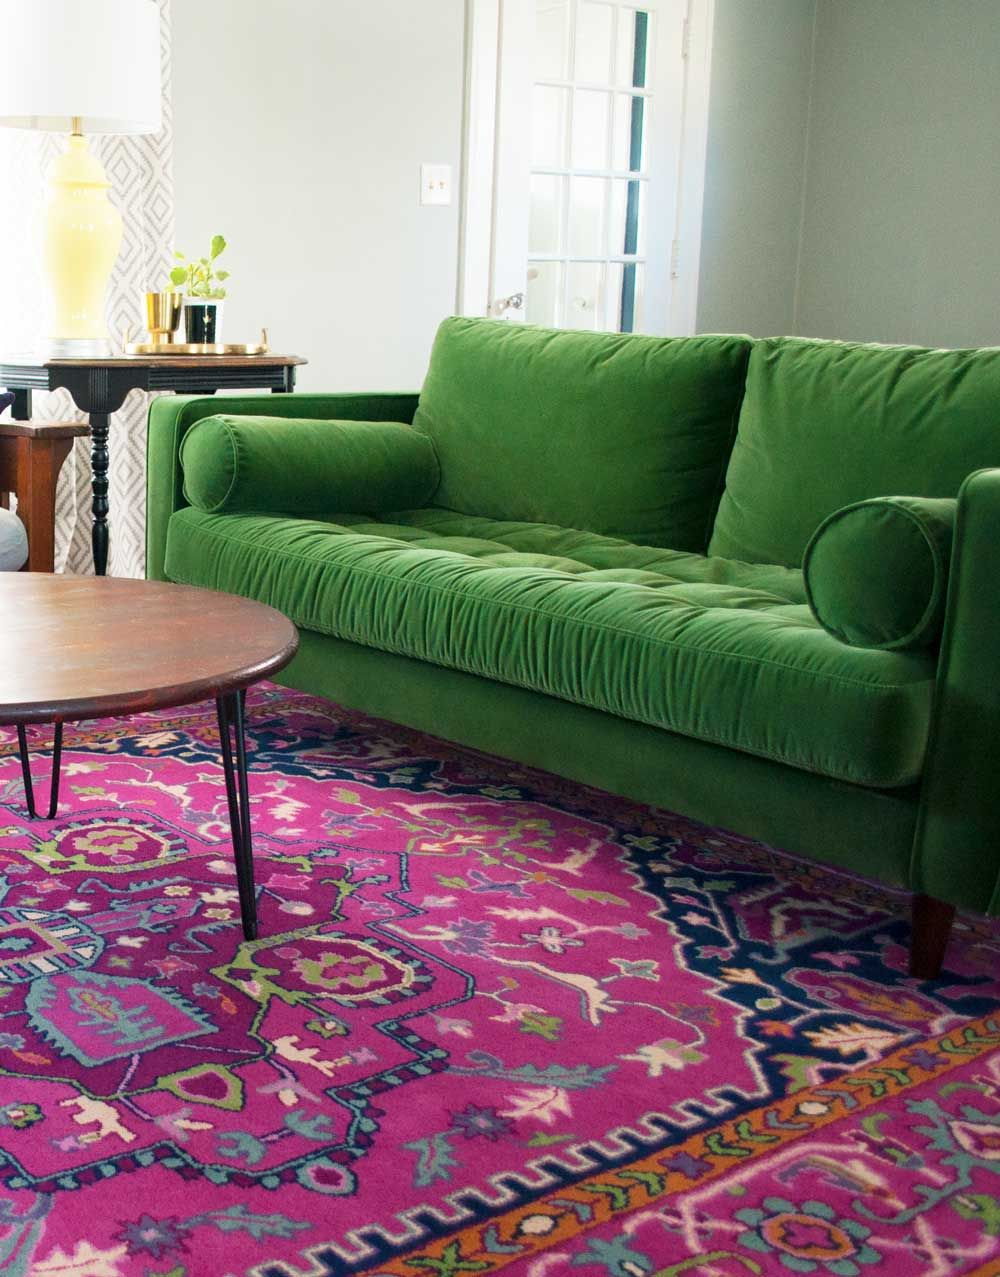 Article Sven Gr Green Sofa And Bright Pink Rug In A Colorful Eclectic Living Room